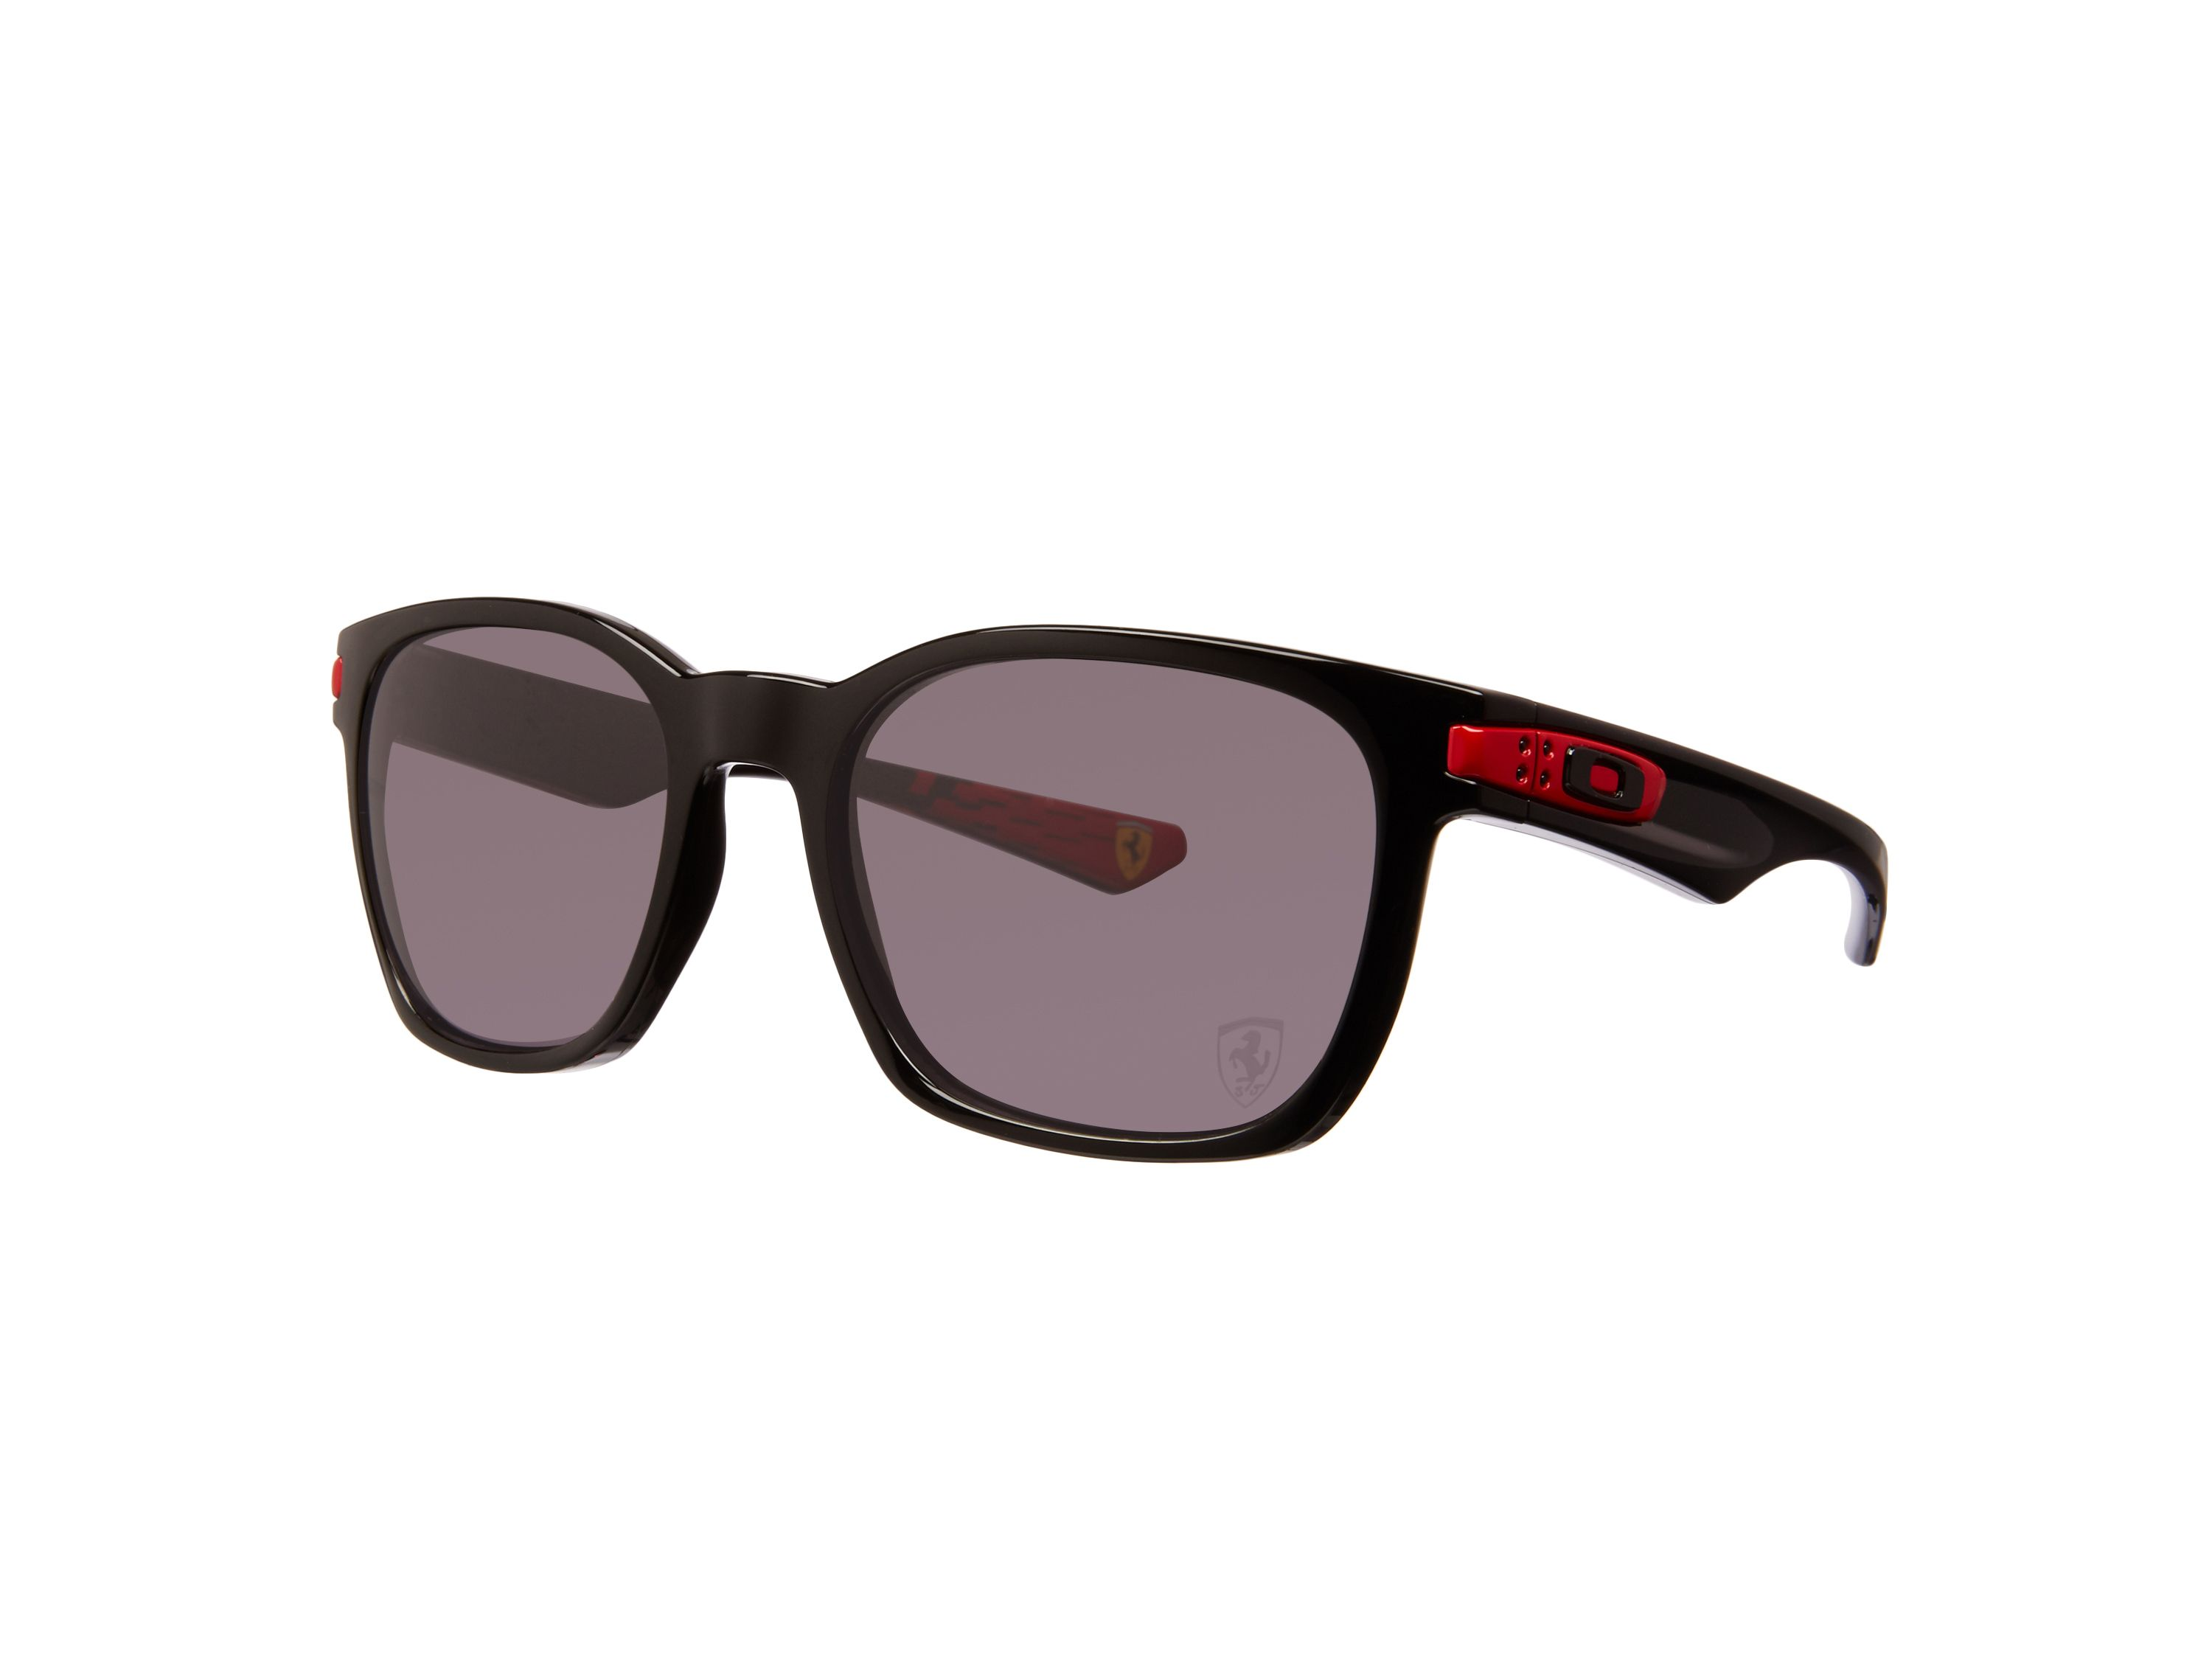 Men warm grey rectangle sunglasses